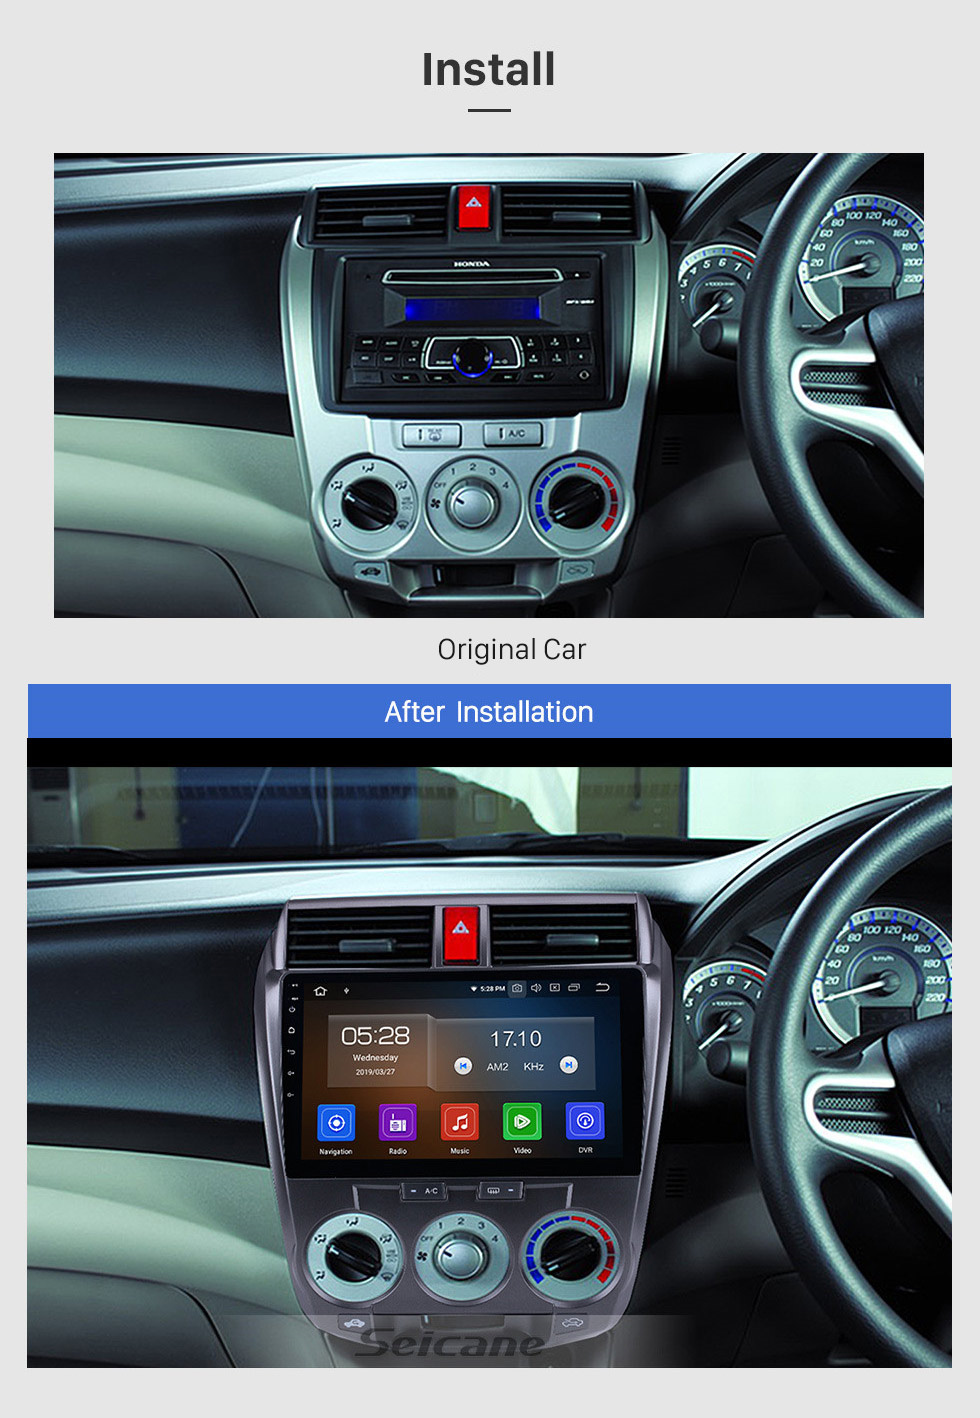 Seicane 10.1 Inch For 2008-2013 Honda CITY Android 10.0 Radio GPS Navigation Car stereo with 1024*600 Touch Screen 4G WIFI Bluetooth OBD2 TPMS Backup Camera Steering Wheel Control Digital TV DVR